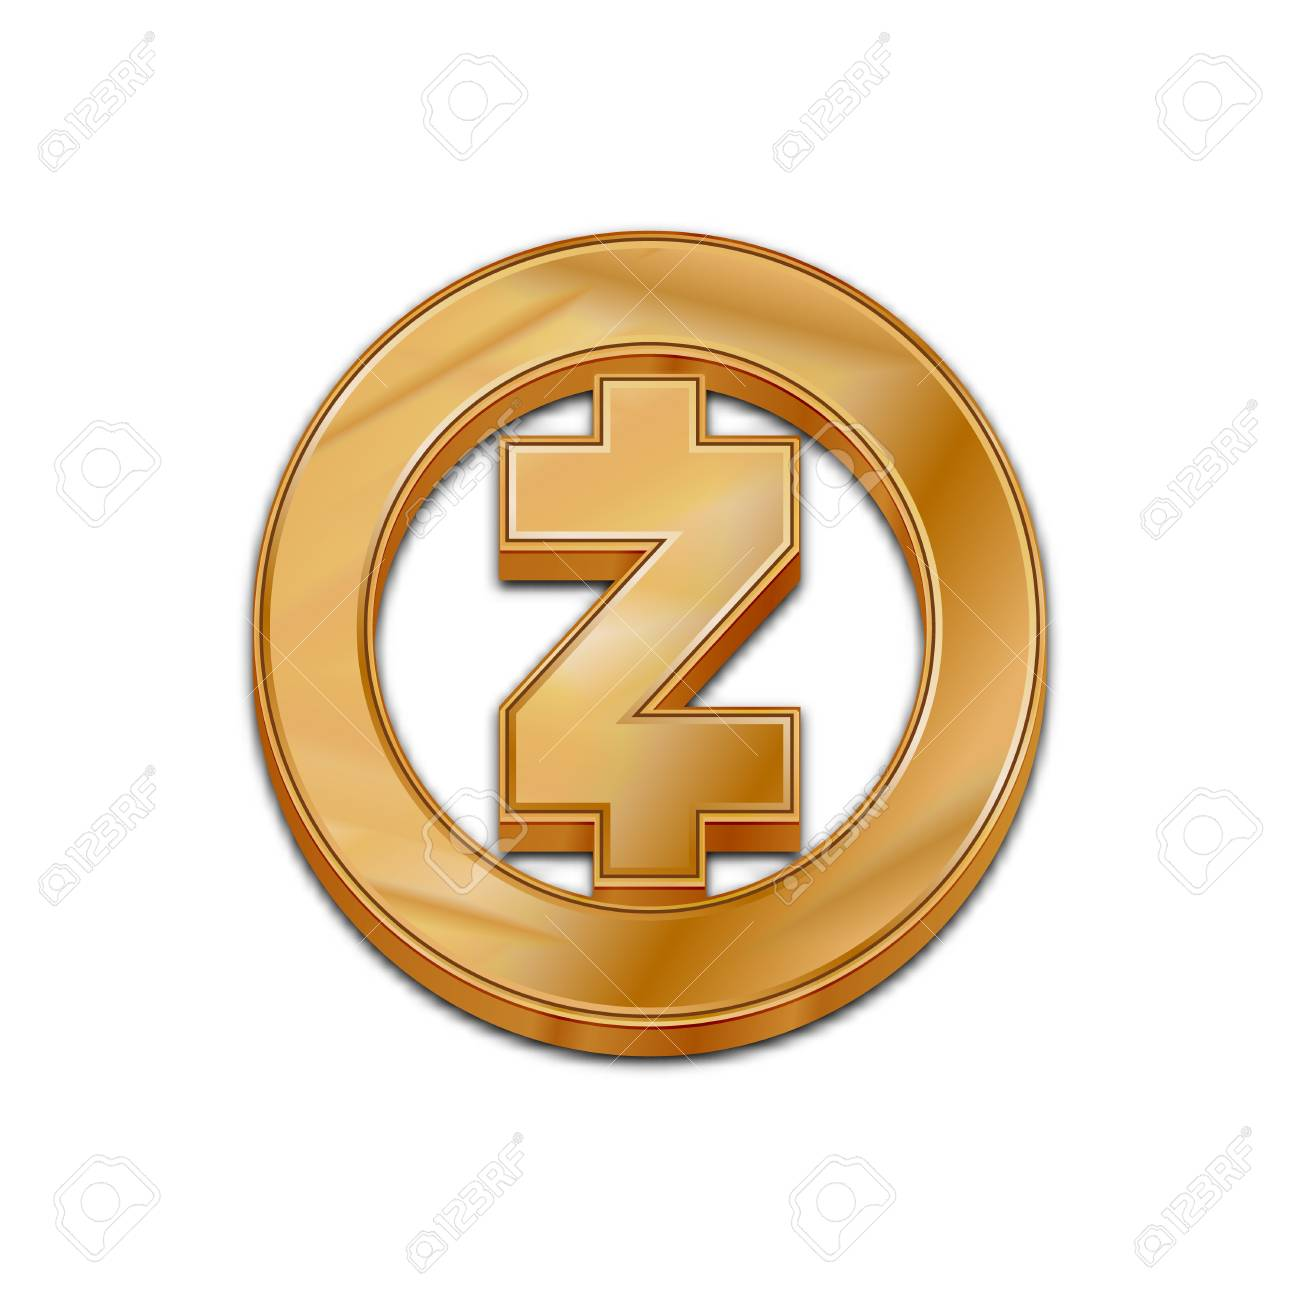 Golden Zcash Coin Symbol Isolated Web Vector Icon Trendy 3d Style